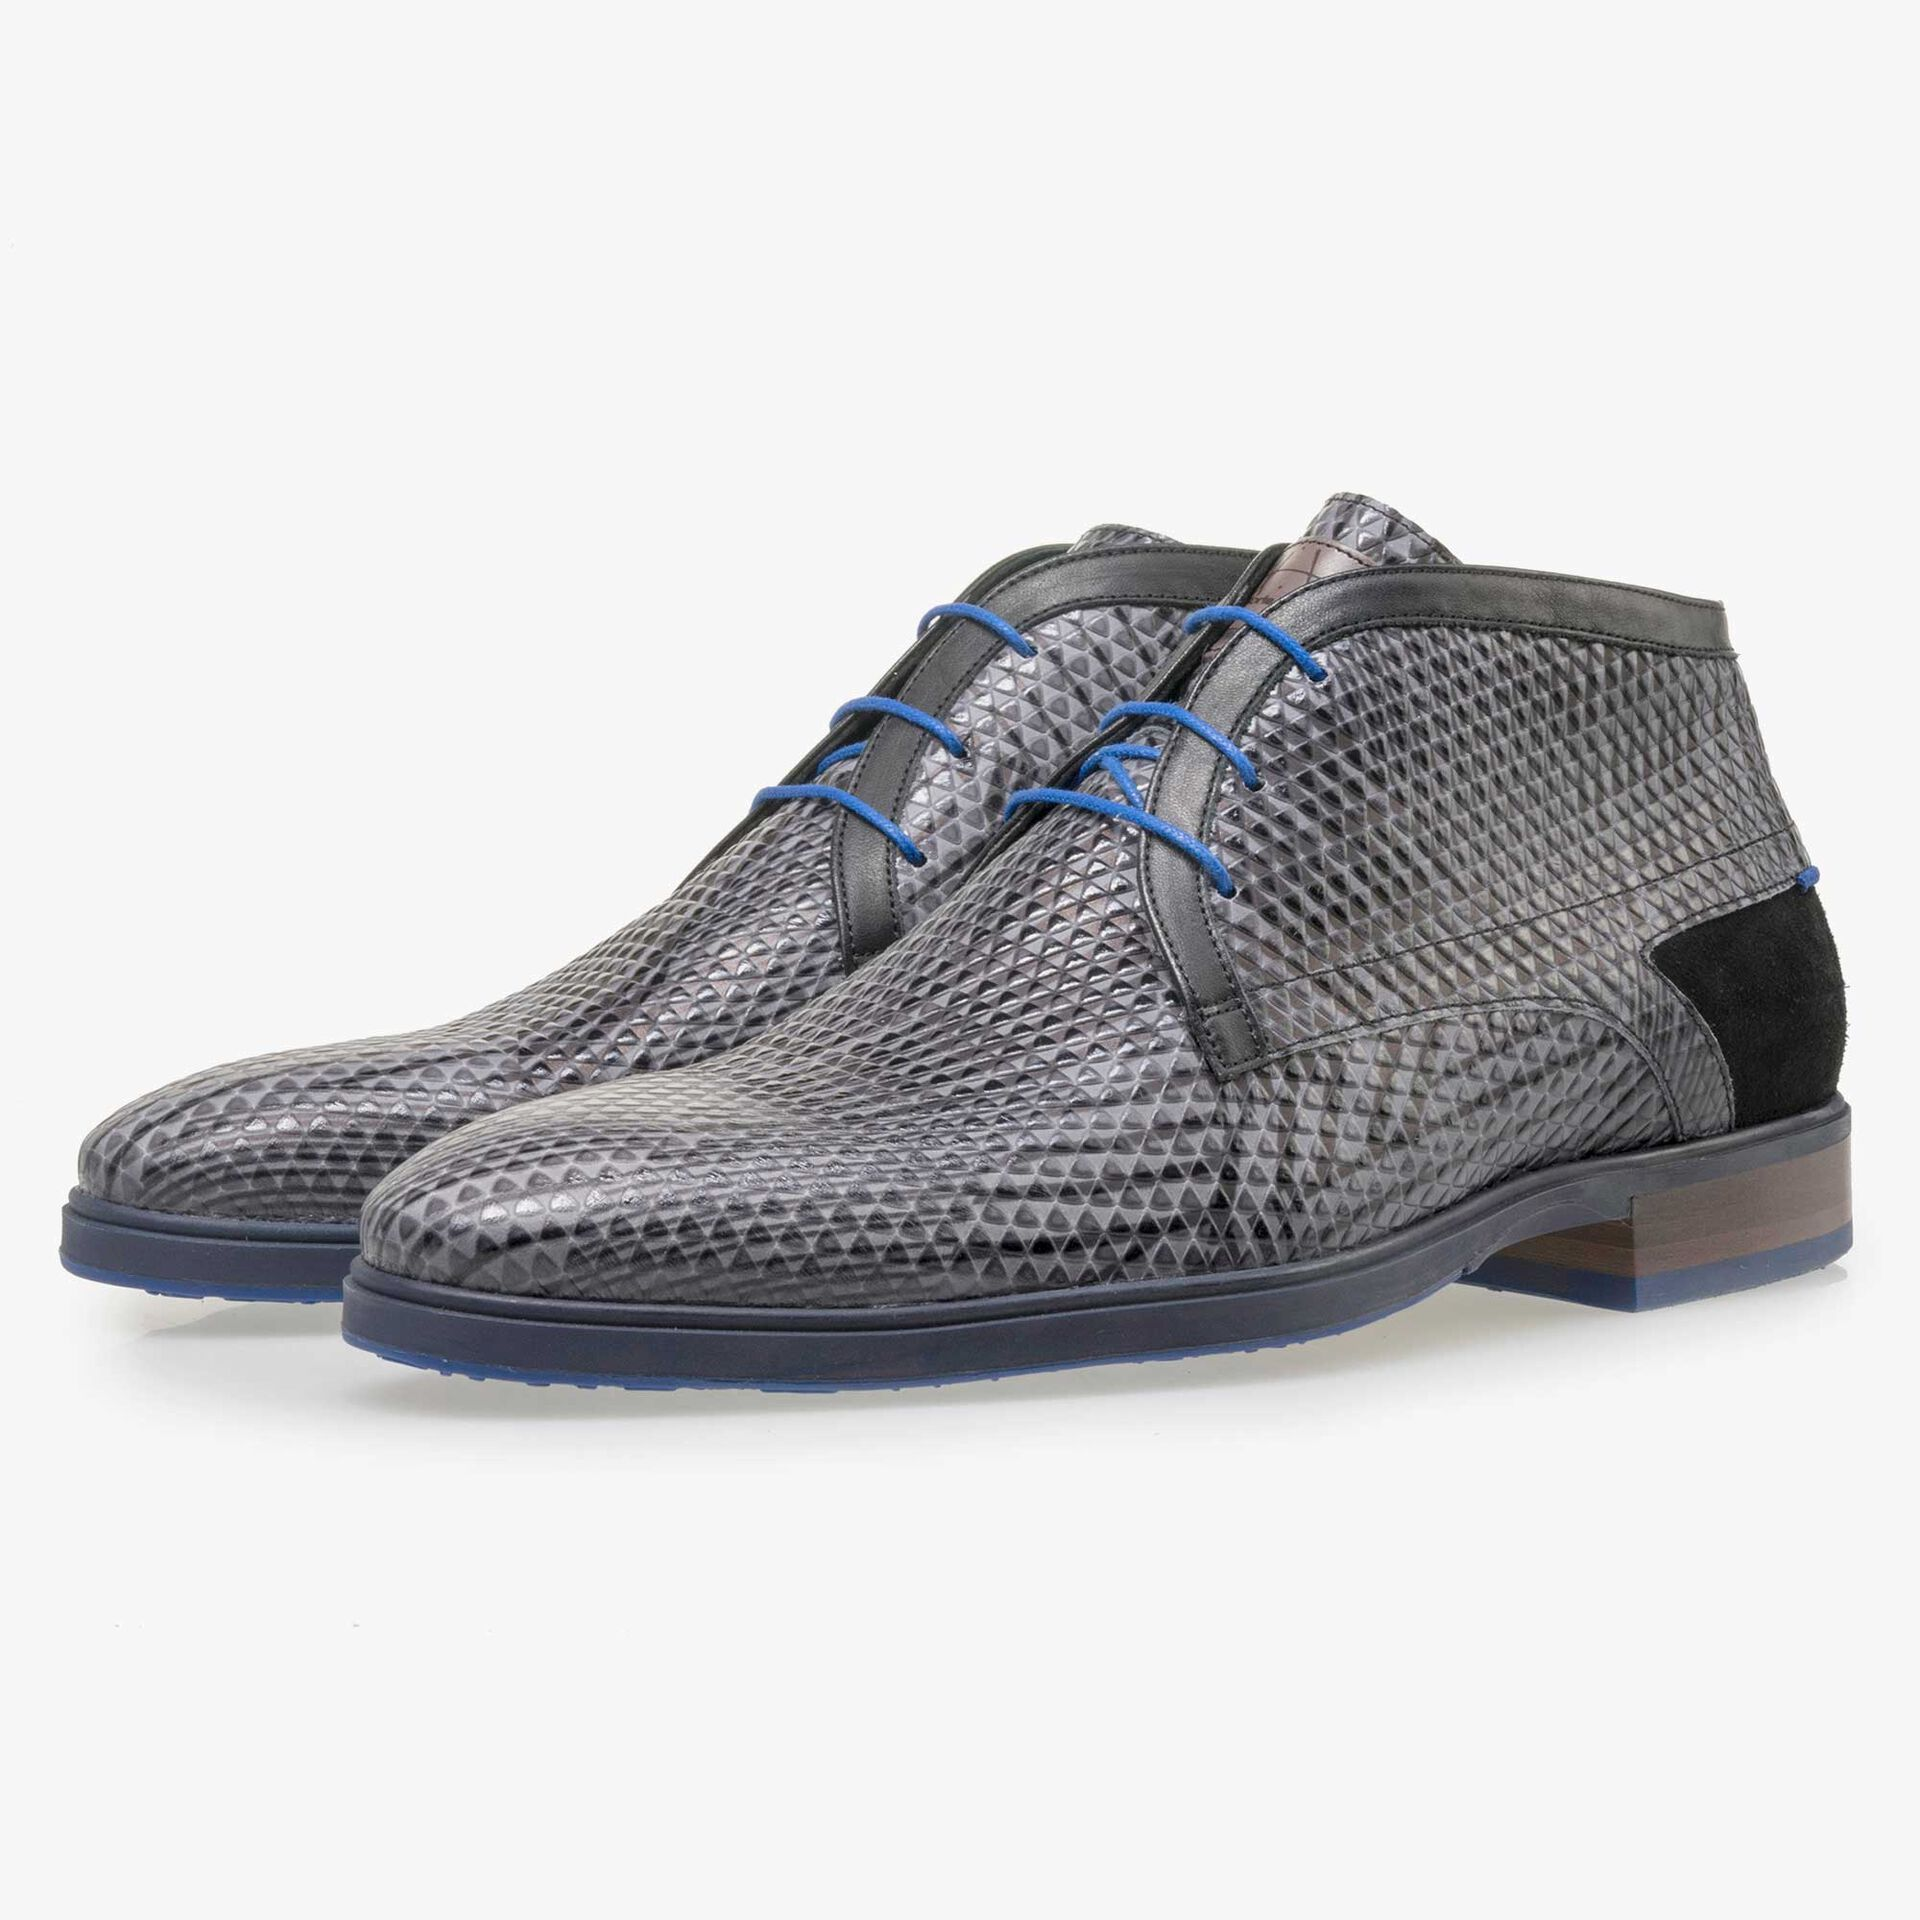 Floris van Bommel men's grey lace boot finished with a triangular pattern